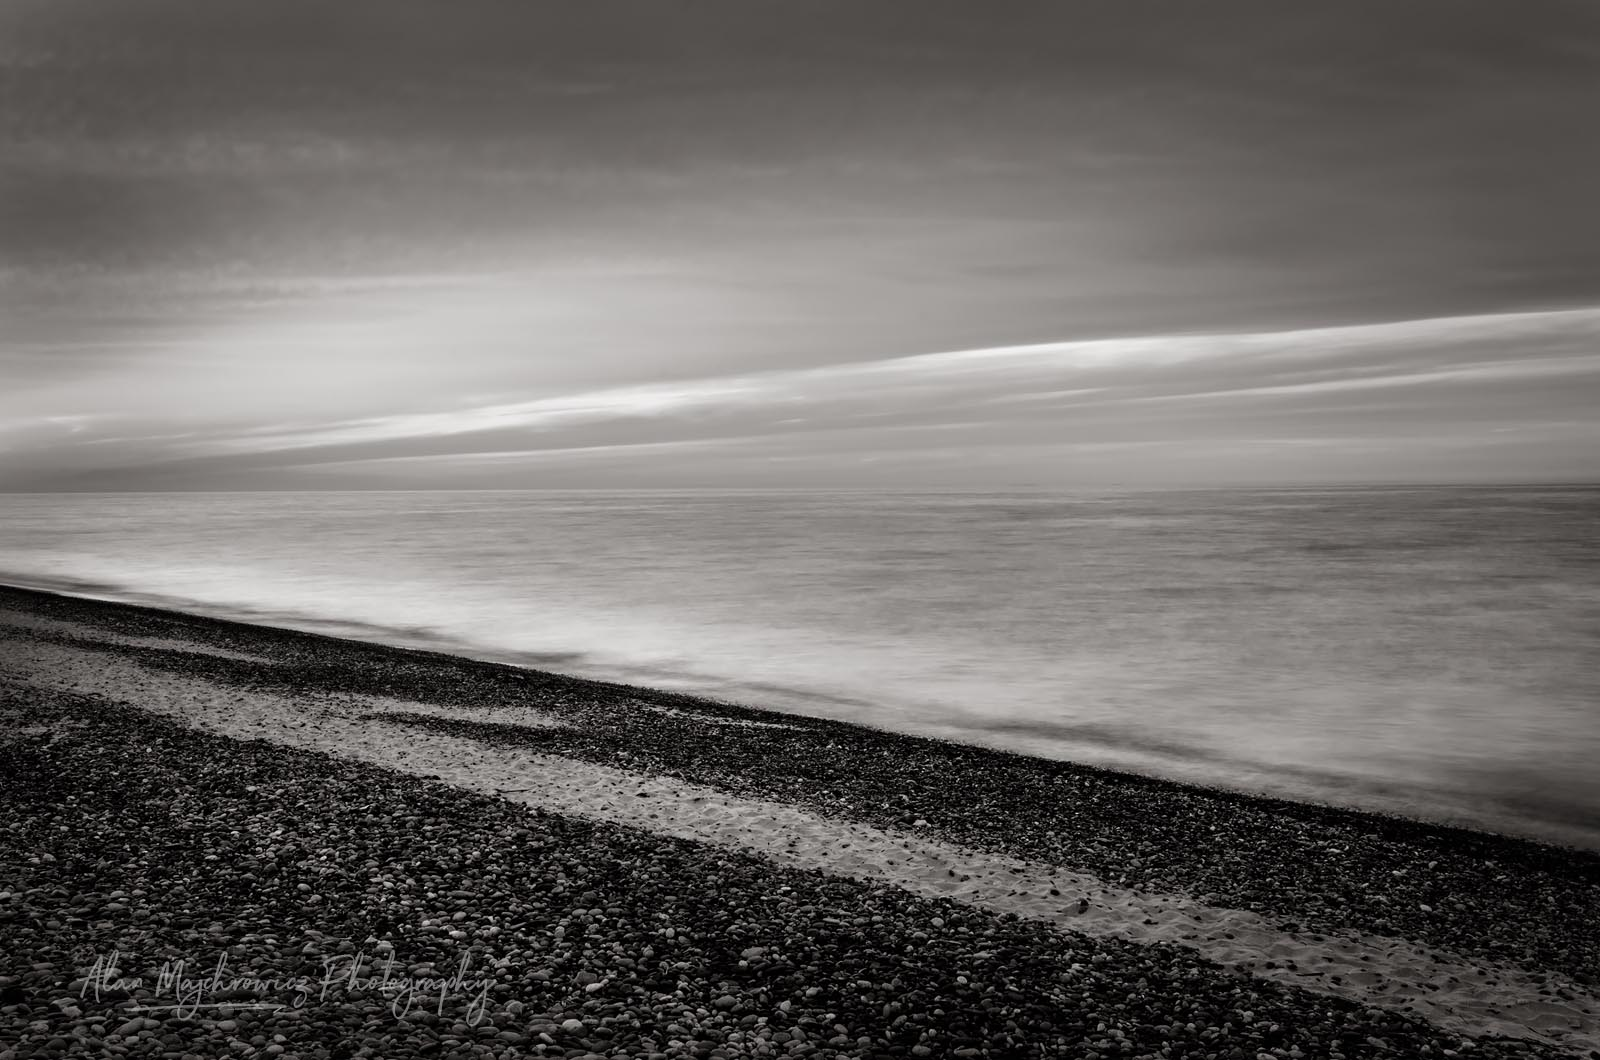 Lake Superior seen from beach at Whitefish Point Upper Peninsula Michigan BW Photo Highlights 2018